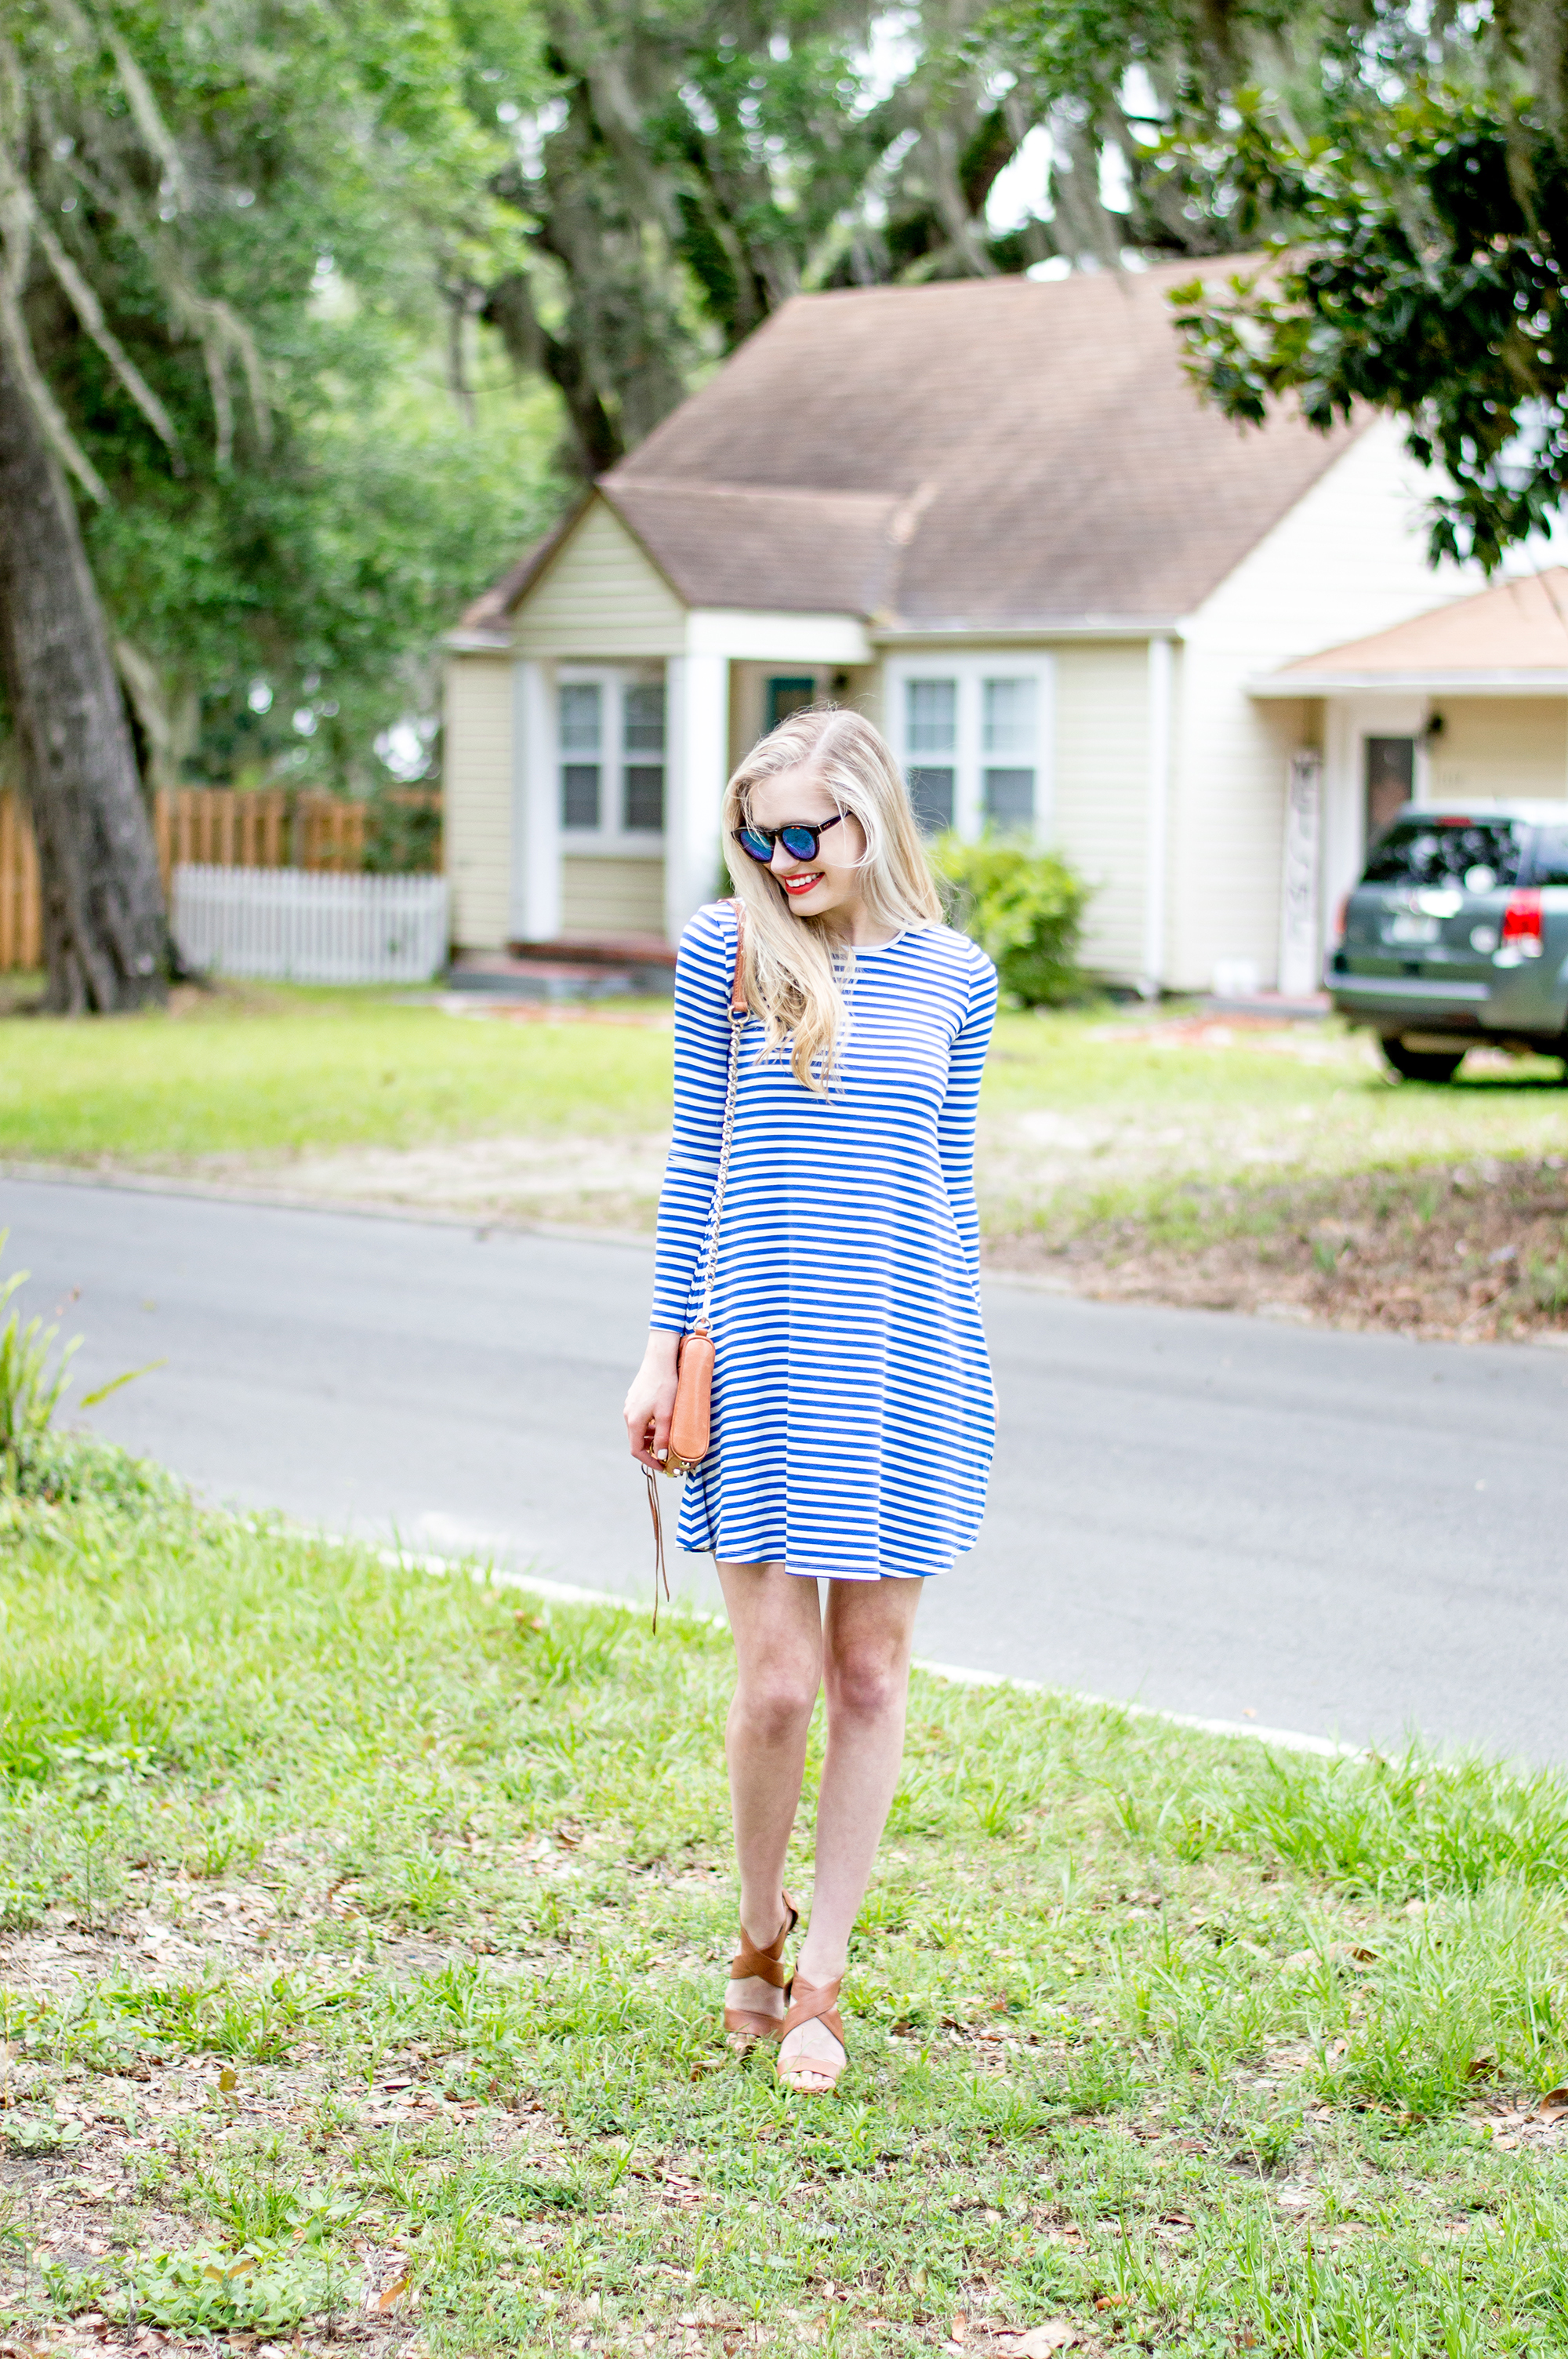 styelled-blog-fashion-style-beauty-lifestyle-blogger-florida-like-to-know-it-jane-hudson-stripes-striped-stripe-dress-sundress-memorial-day-diff-eyewear-sunglasses-rebecca-minkoff-06